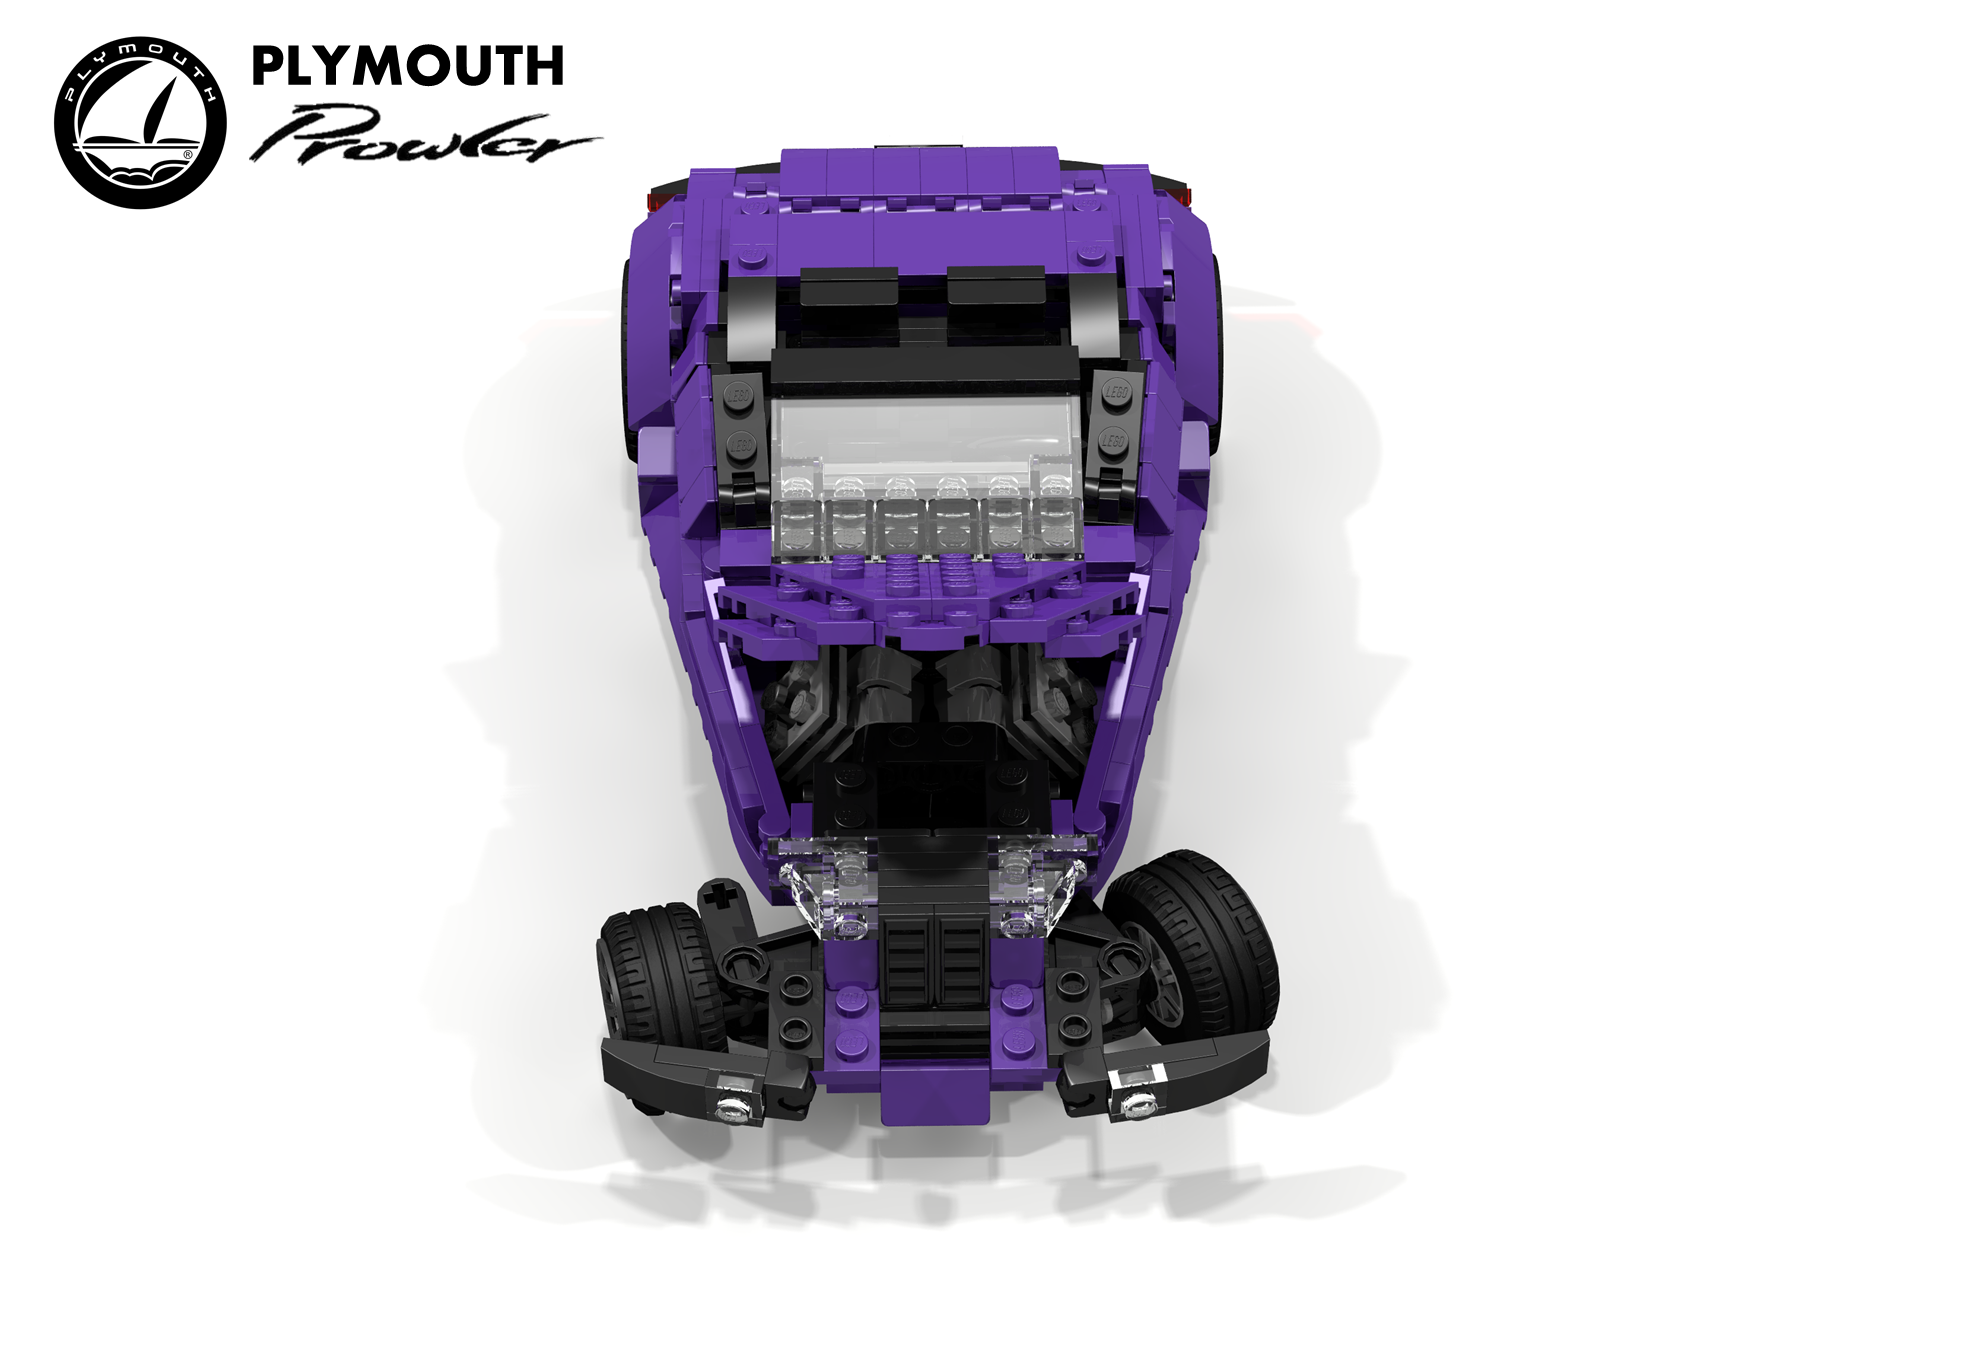 plymouth_prowler_09.png